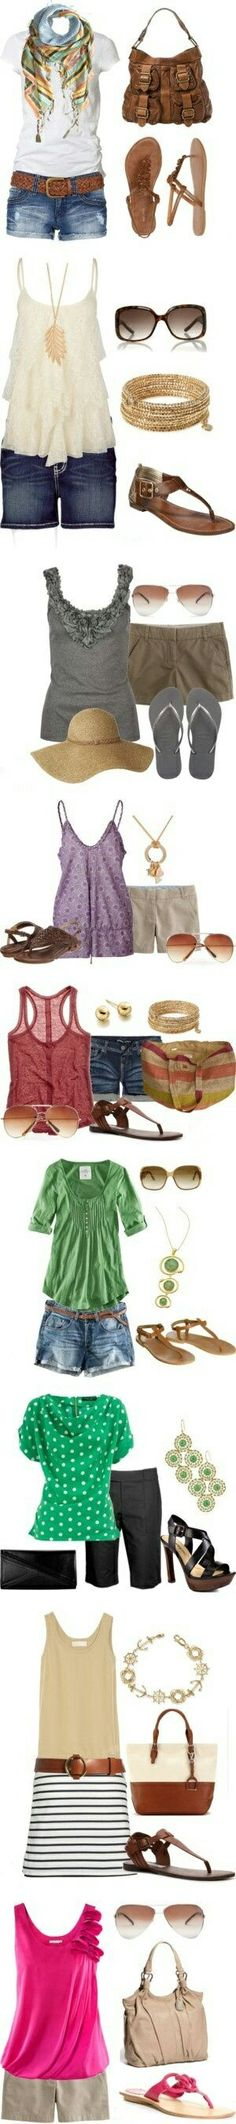 Throw that print scarf on there to make the whole outfit zing! :) LOLO Moda: #2014 #summer #spring outfits on, www.lolomoda.com